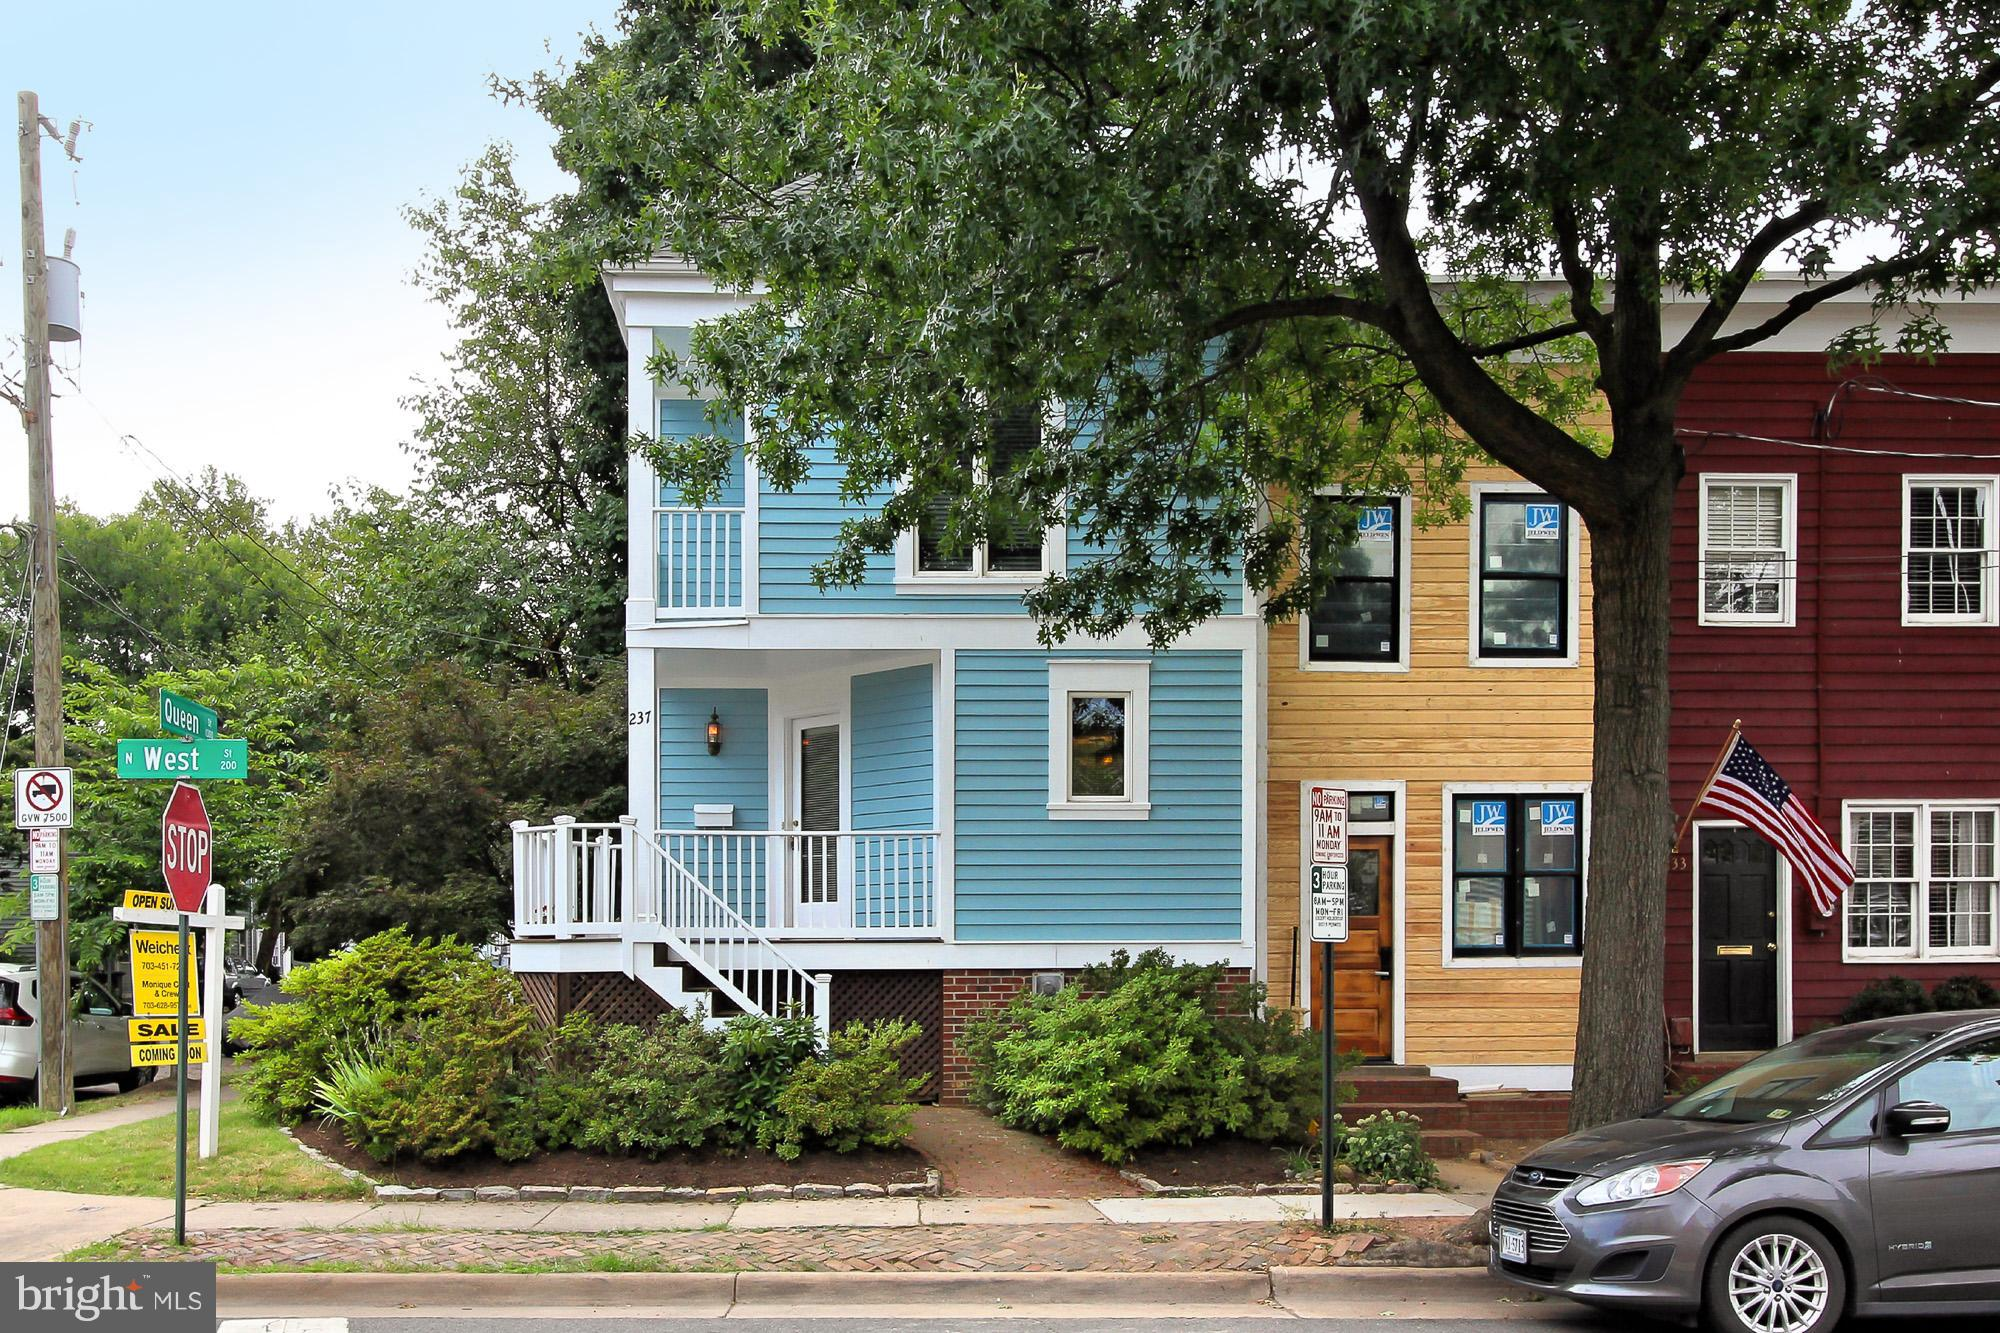 Beautiful corner home! 4 blocks to Braddock Rd & King St Metros. New roof, windows & skylight, hardiplank all 2012. Kit w/European SS appliances (2014 Fridge) & granite. 2 spacious BR both w/balconies. Spiral stairs to 3rd level BR + roof top deck & super storage! LR has soaring ceil, cozy corner FP & French doors to charming brick patio. Gleaming hardwood floors & fresh paint throughout. Off street parking!w/balconies. Spiral stairs to 3rd level BR + roof top deck & super storage! LR has soaring ceil, cozy corner FP & French doors to charming brick patio. Gleaming hardwood floors & fresh paint throughout. Off street parking!